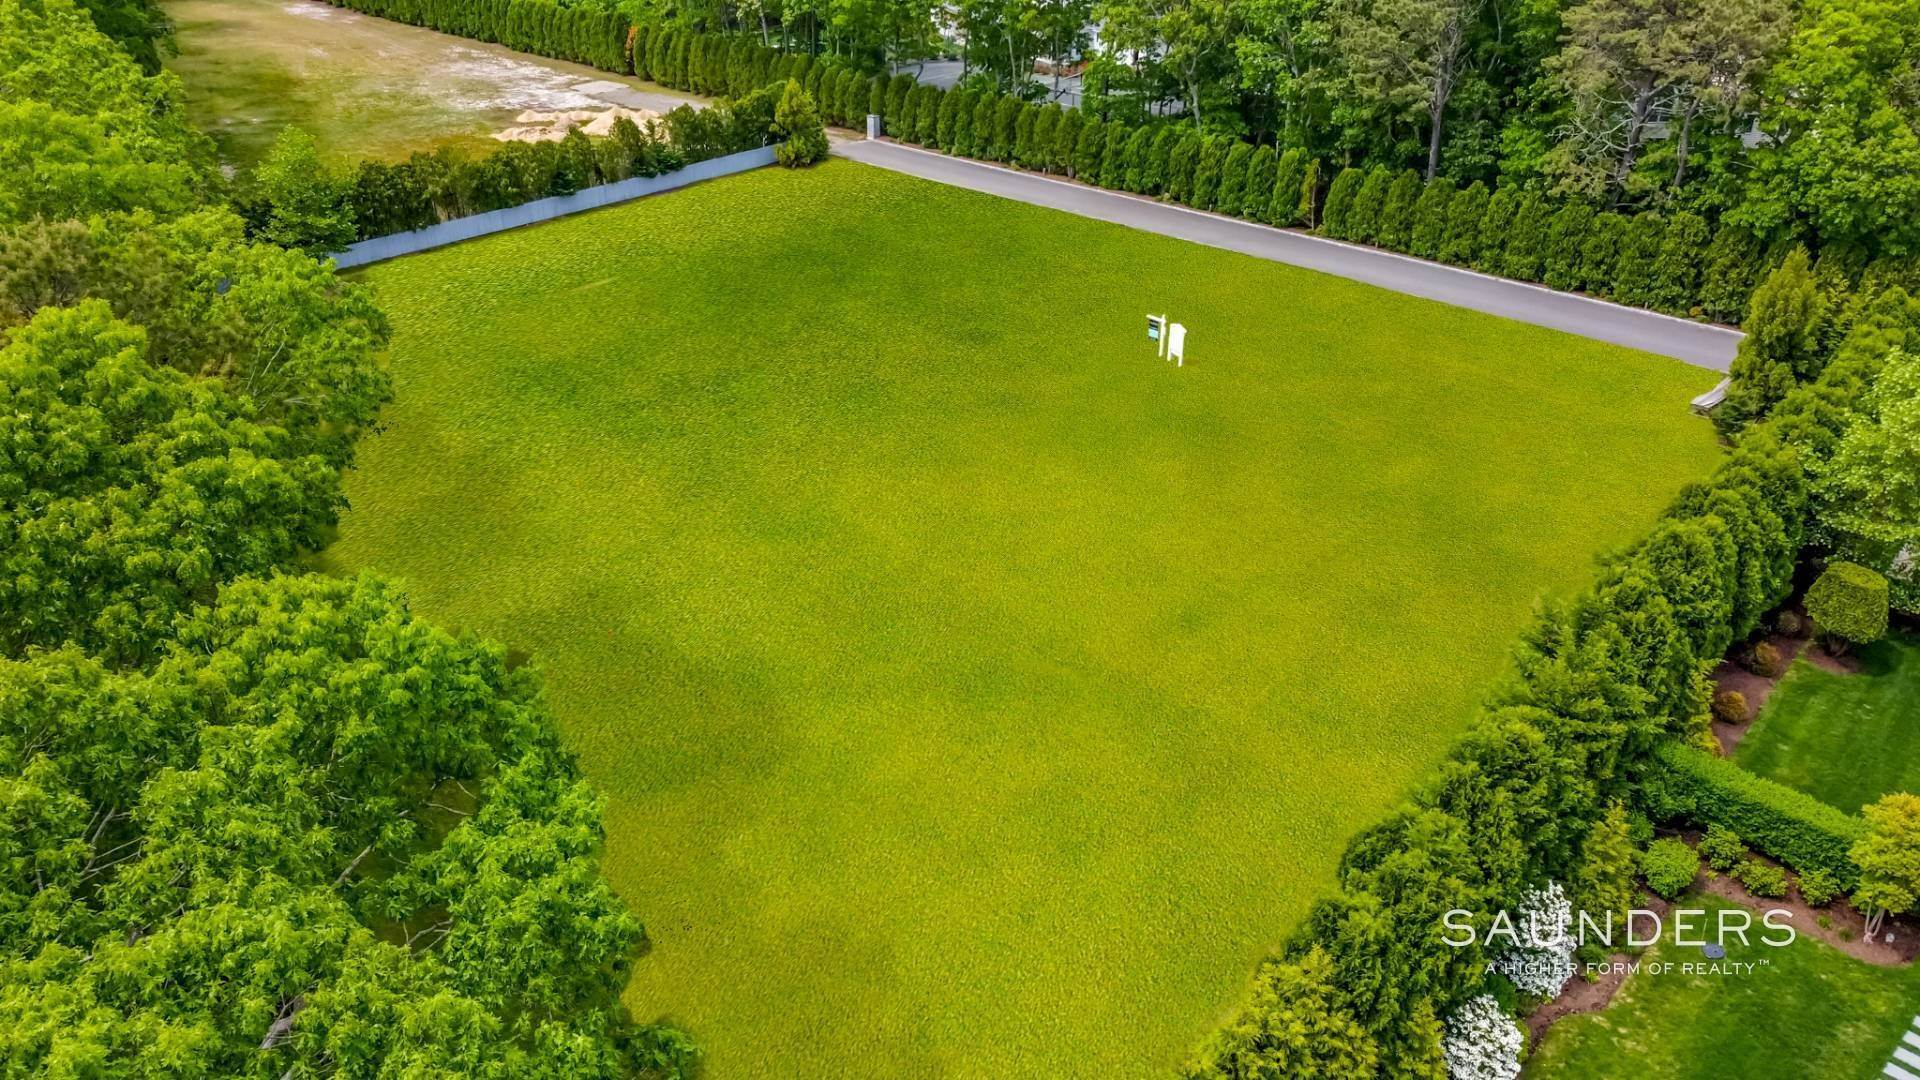 3. Land for Sale at Vacant Land Opportunity Center Of The Village Of Quogue 129 Montauk Highway, Quogue Village, Southampton Town, NY 11959